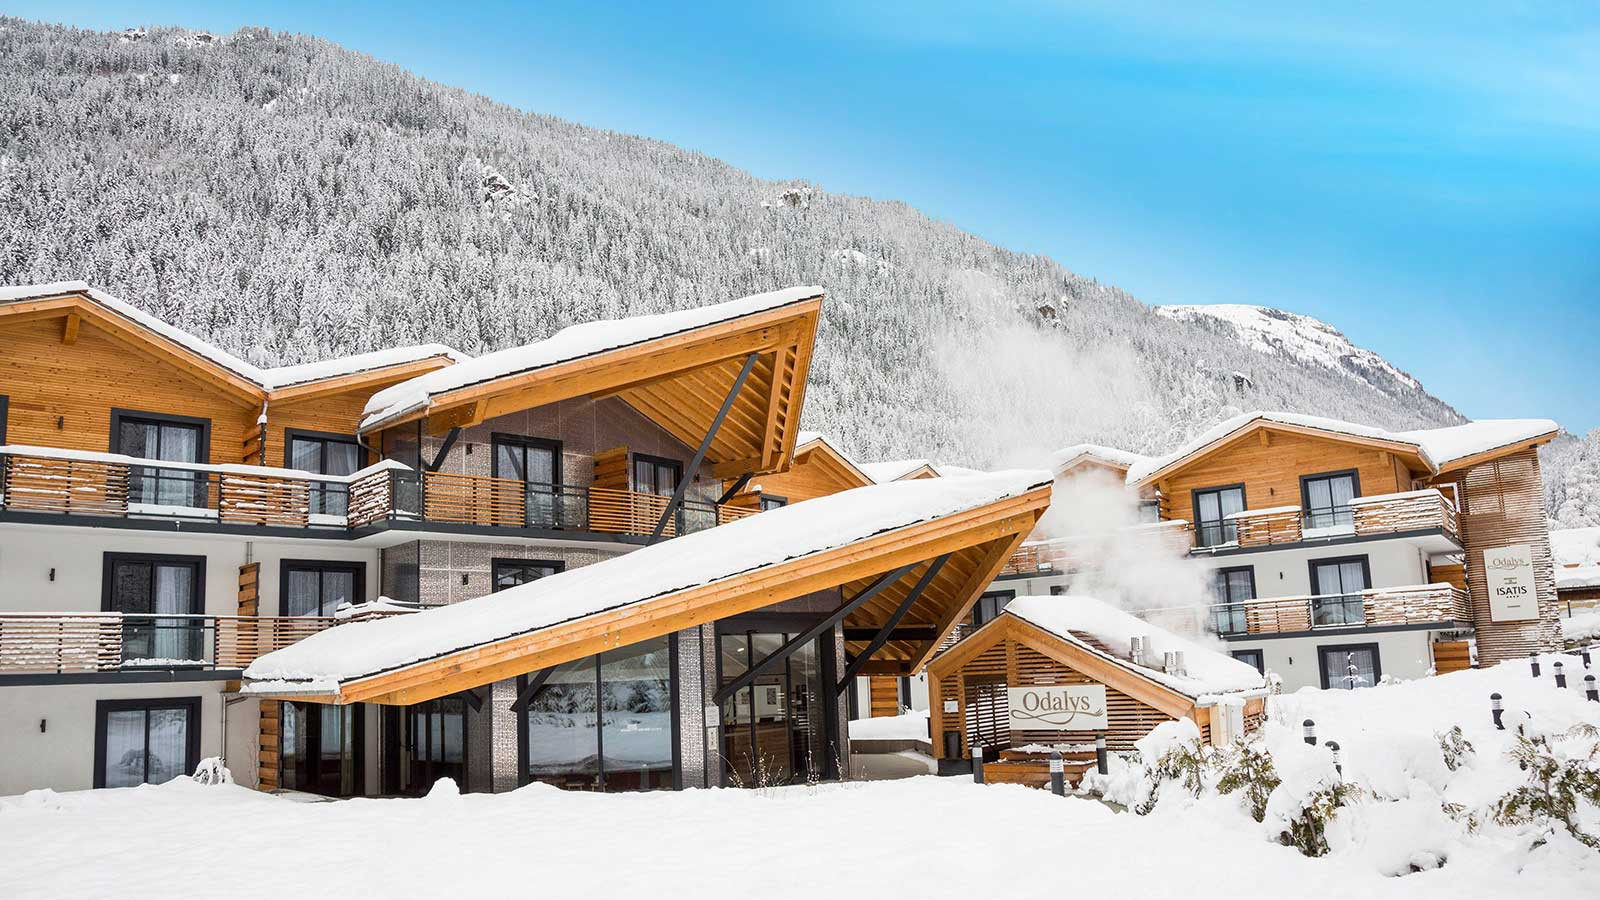 Residence Isatis - Self-catered apartment-chamonix-residence - exterior